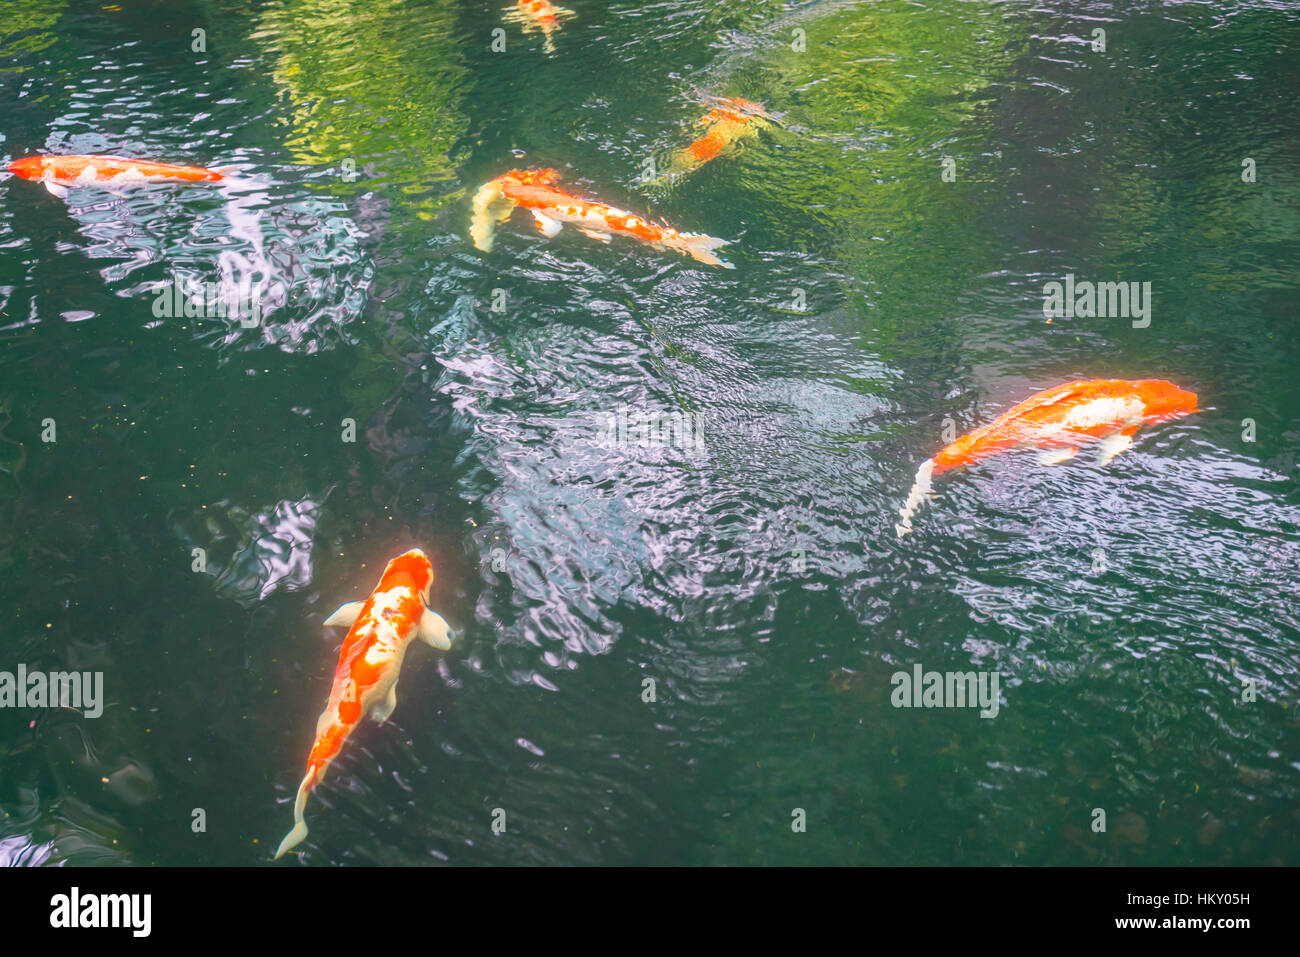 Colorful Koi fish swimming in water Stock Photo, Royalty Free Image ...